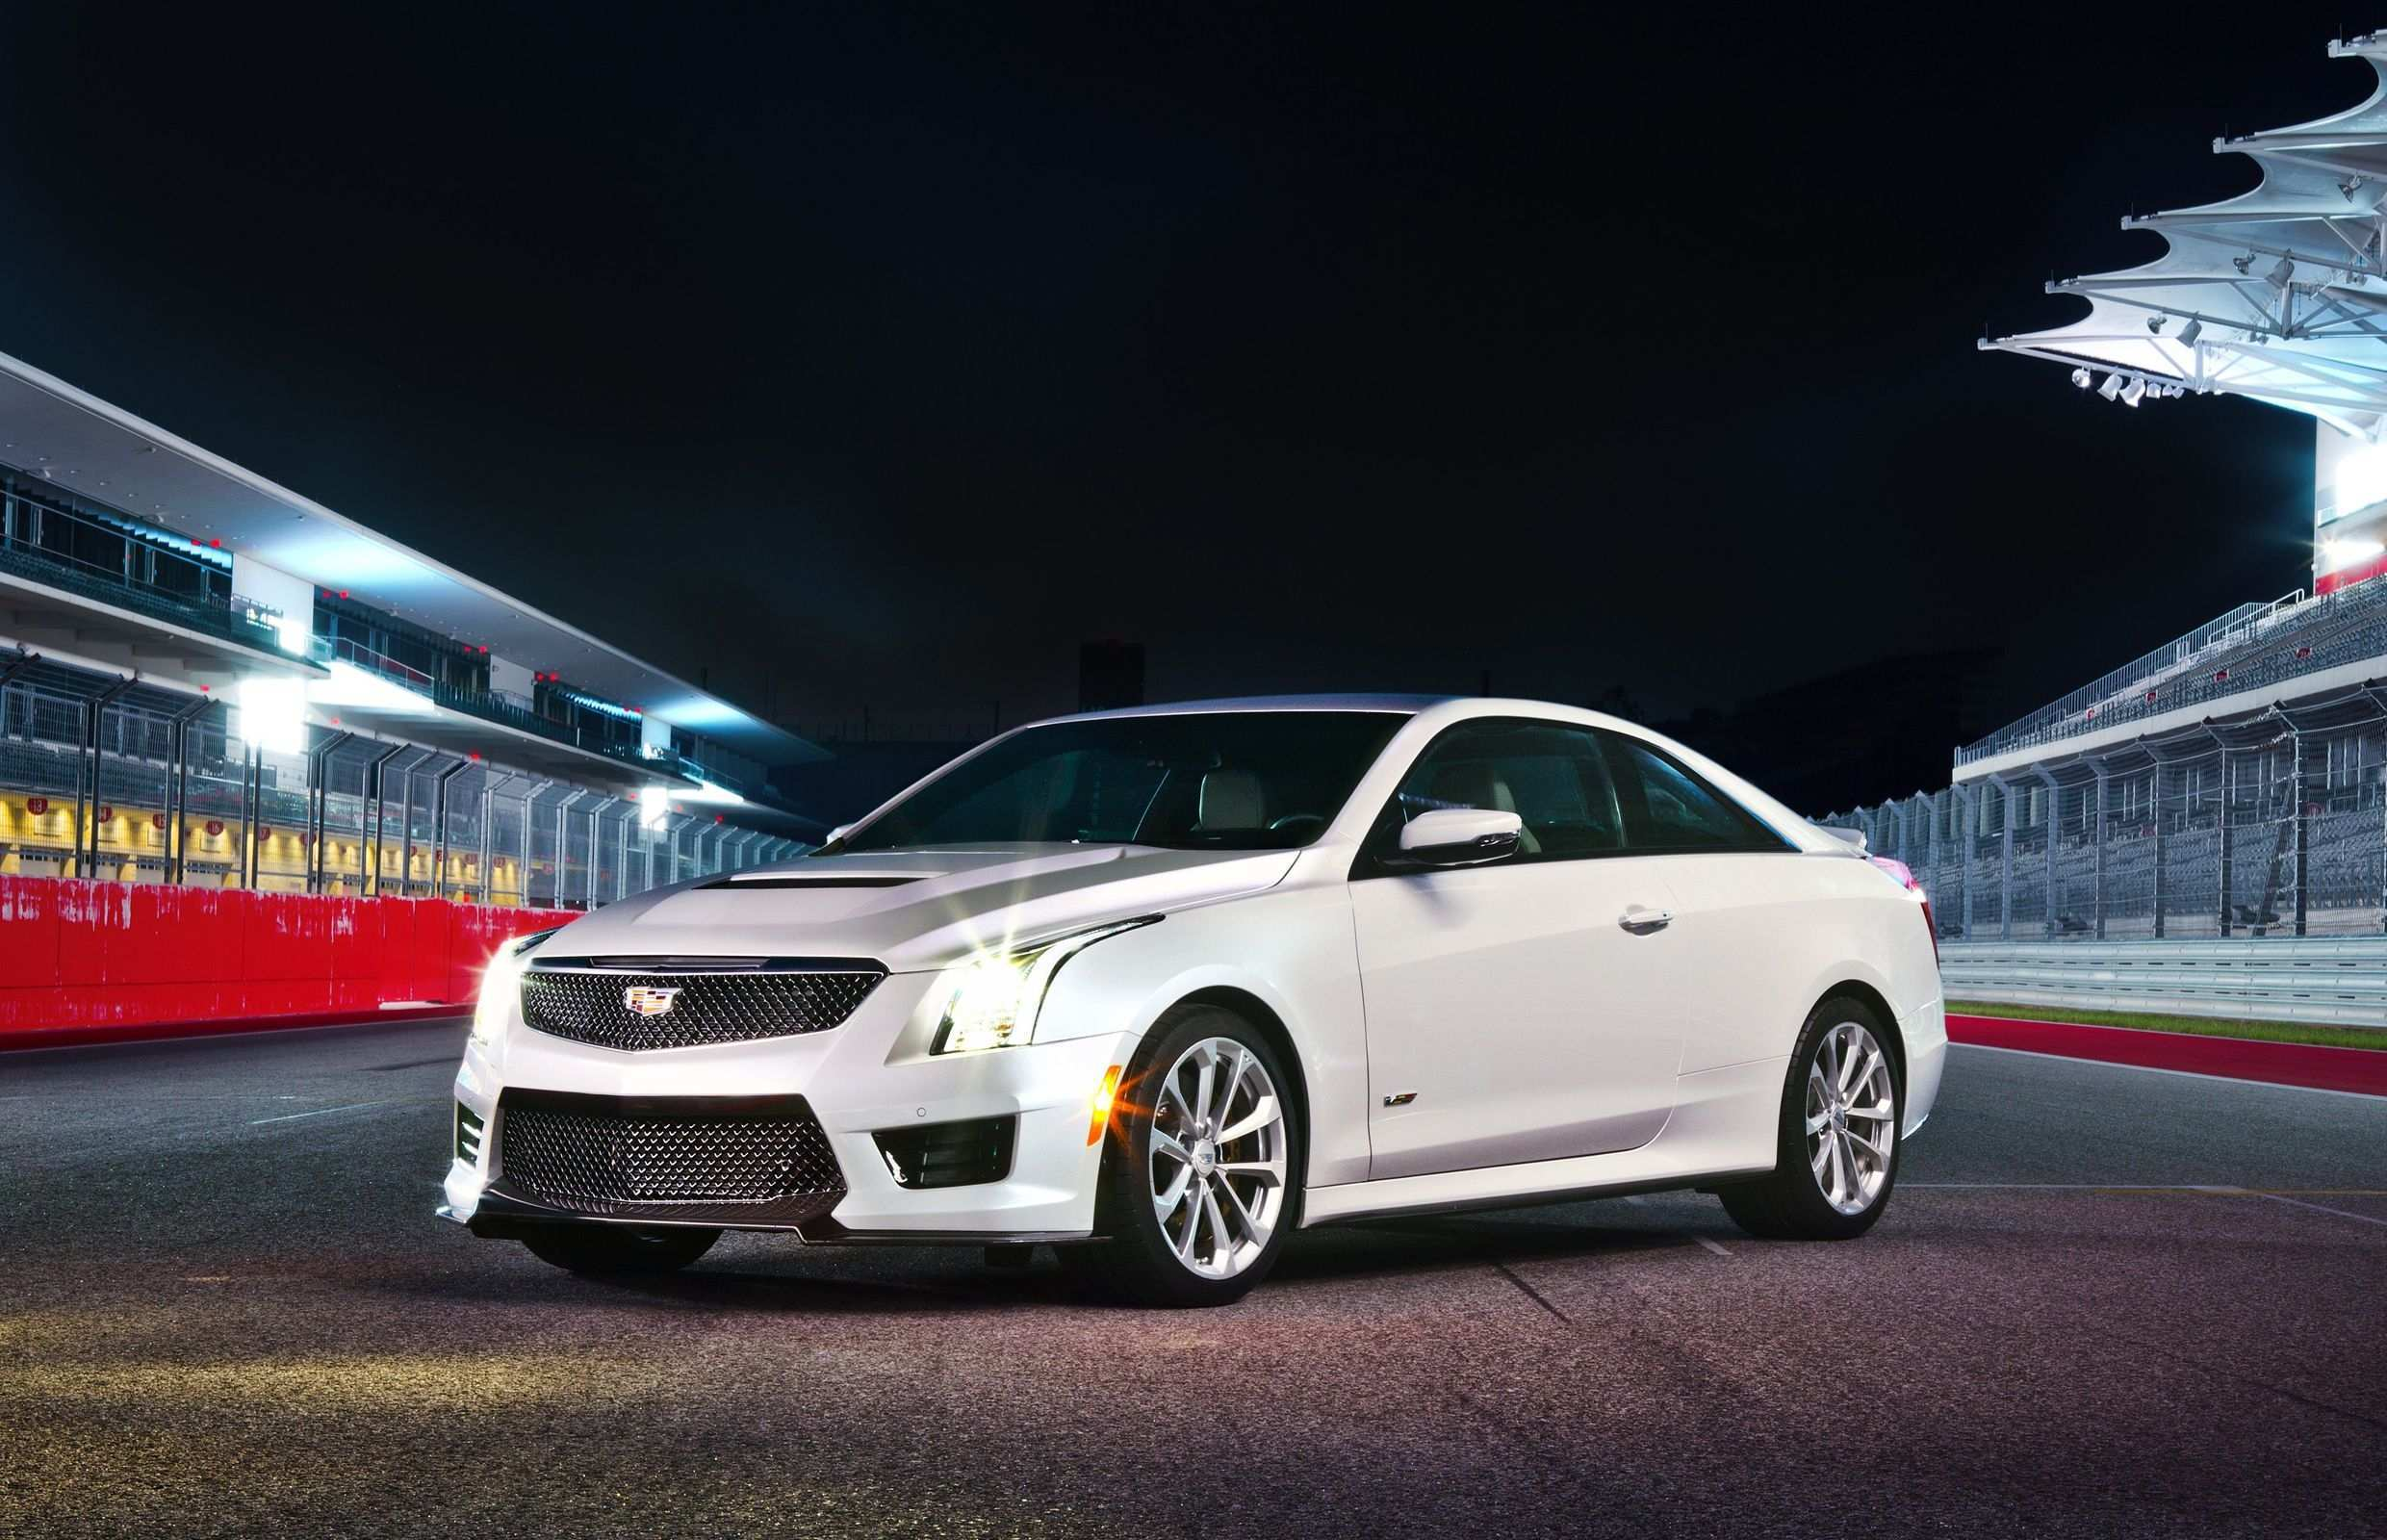 86 Great 2019 Cadillac Ats Redesign New Review for 2019 Cadillac Ats Redesign